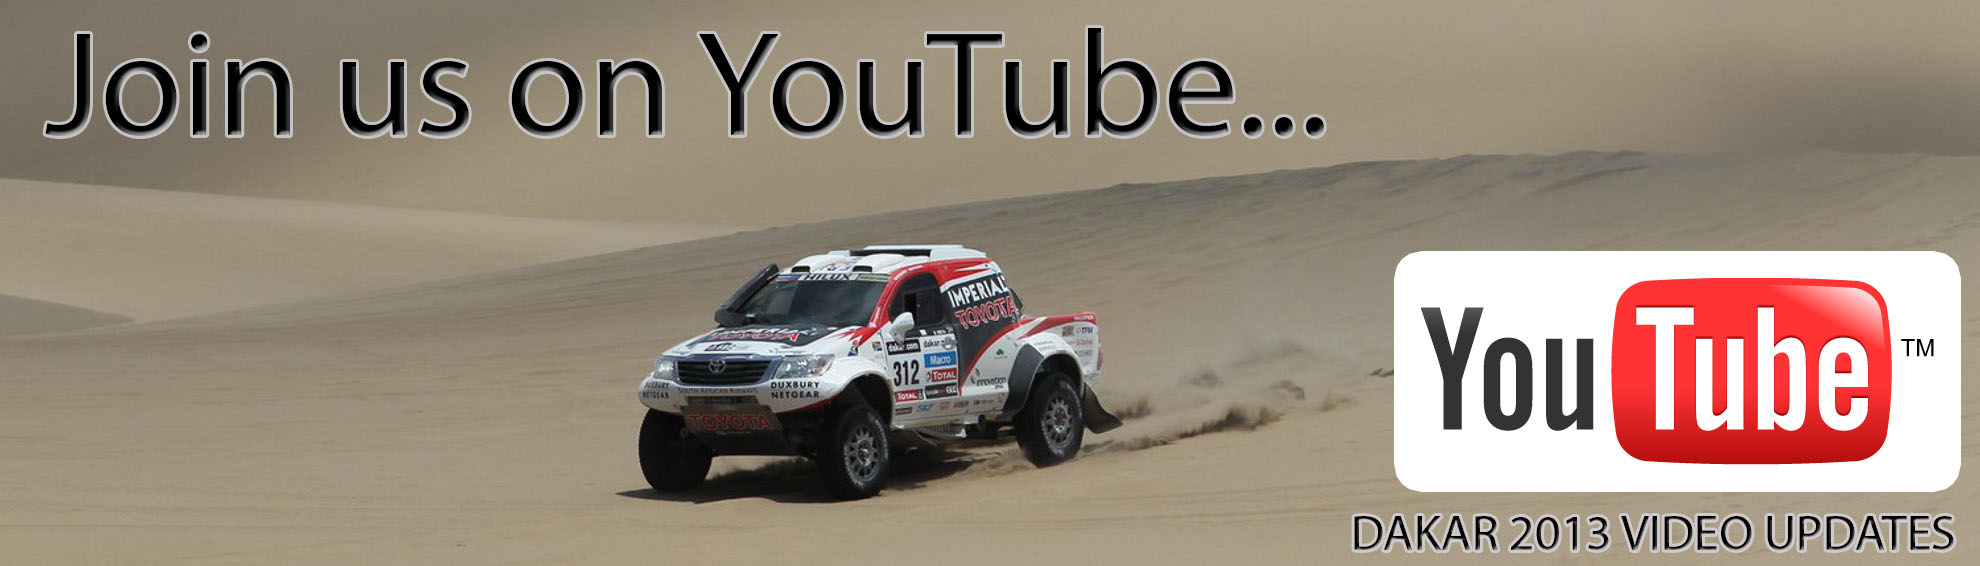 Dakar Rally YourTube